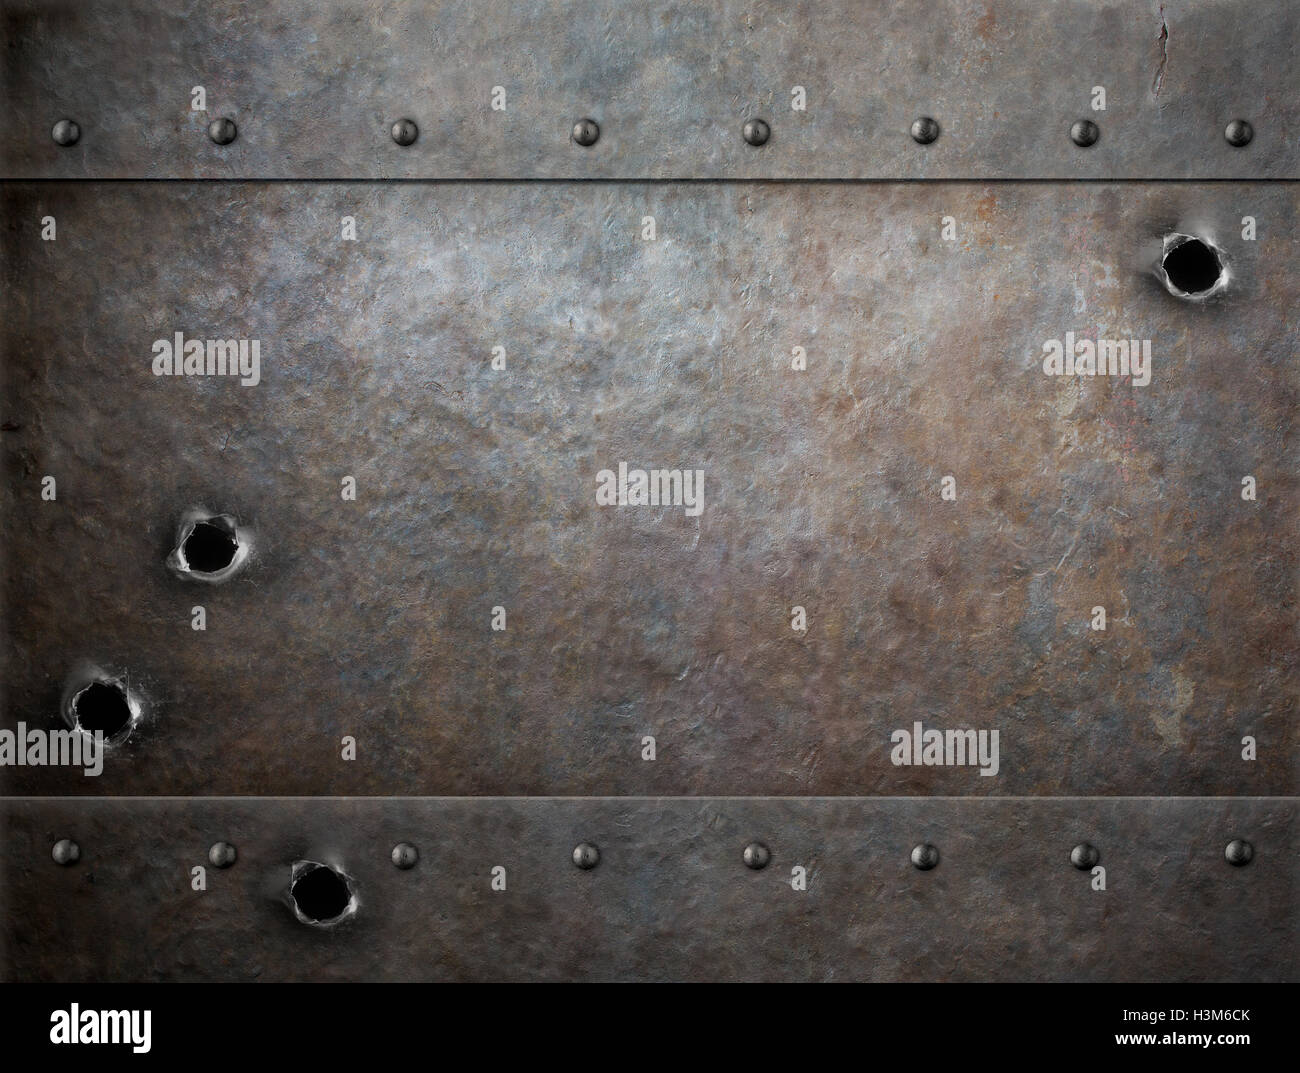 Old Metal Background With Bullet Holes Stock Photo